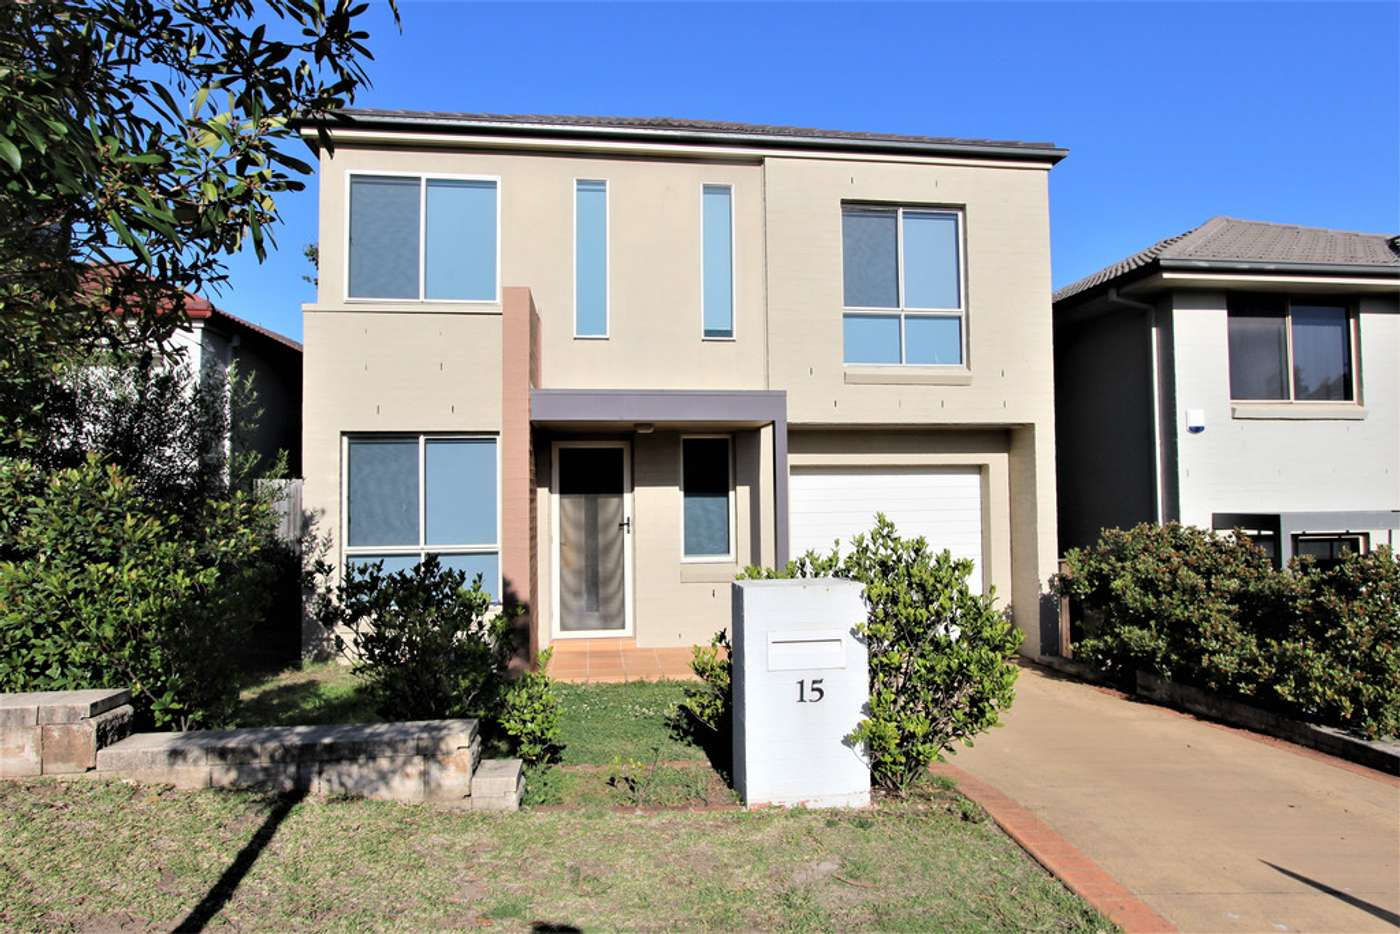 Main view of Homely house listing, 15 Hindostan Road, Glenfield NSW 2167